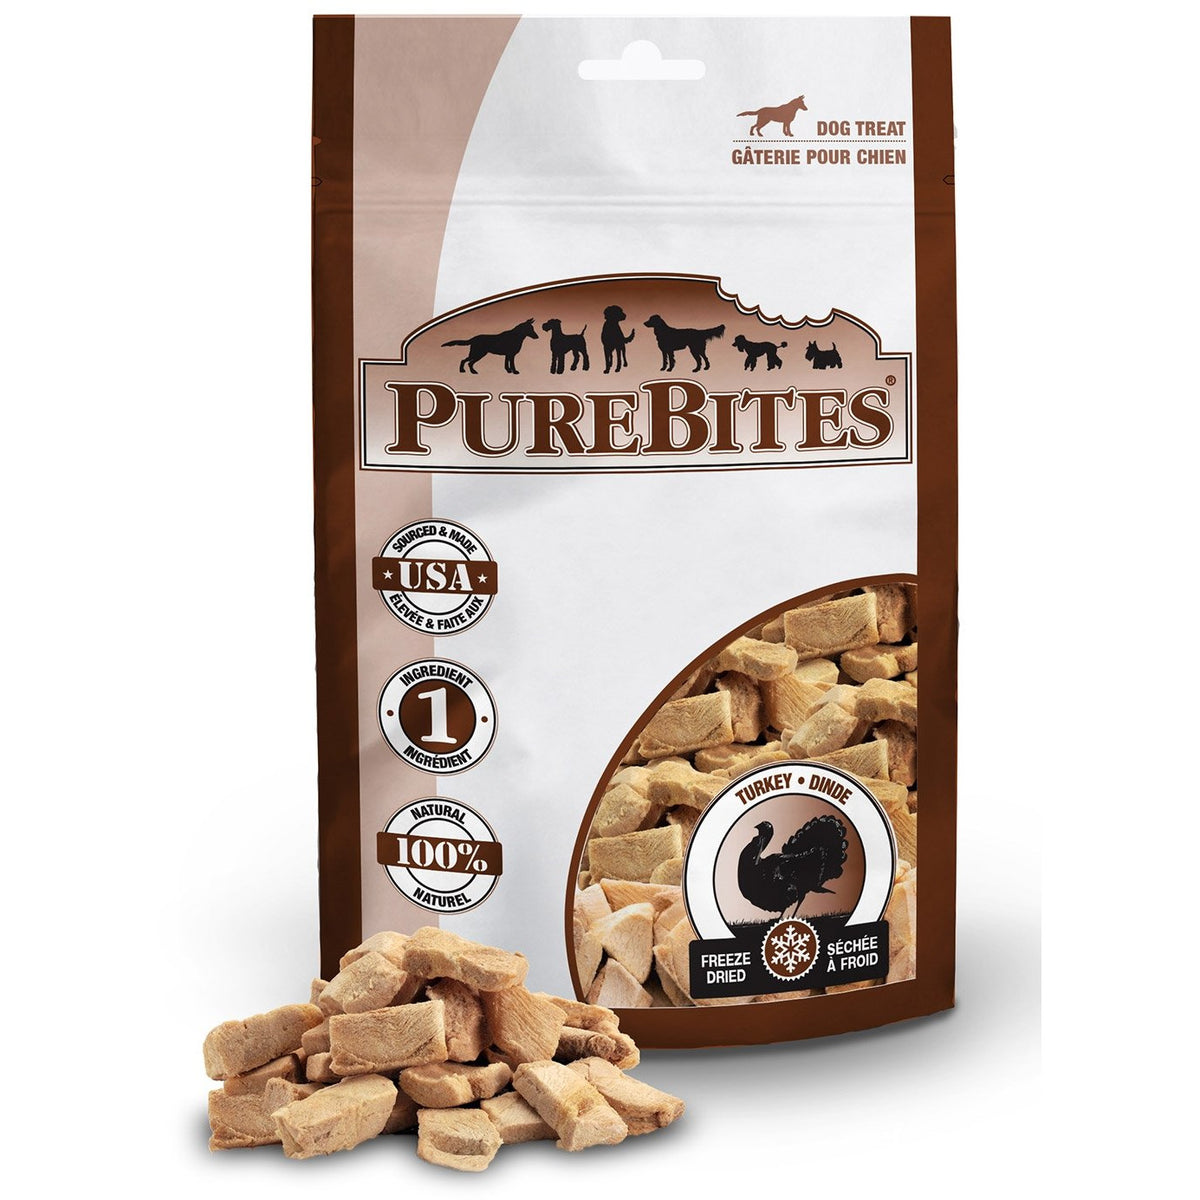 PureBites Freeze Dried Turkey Breast Treats 33g